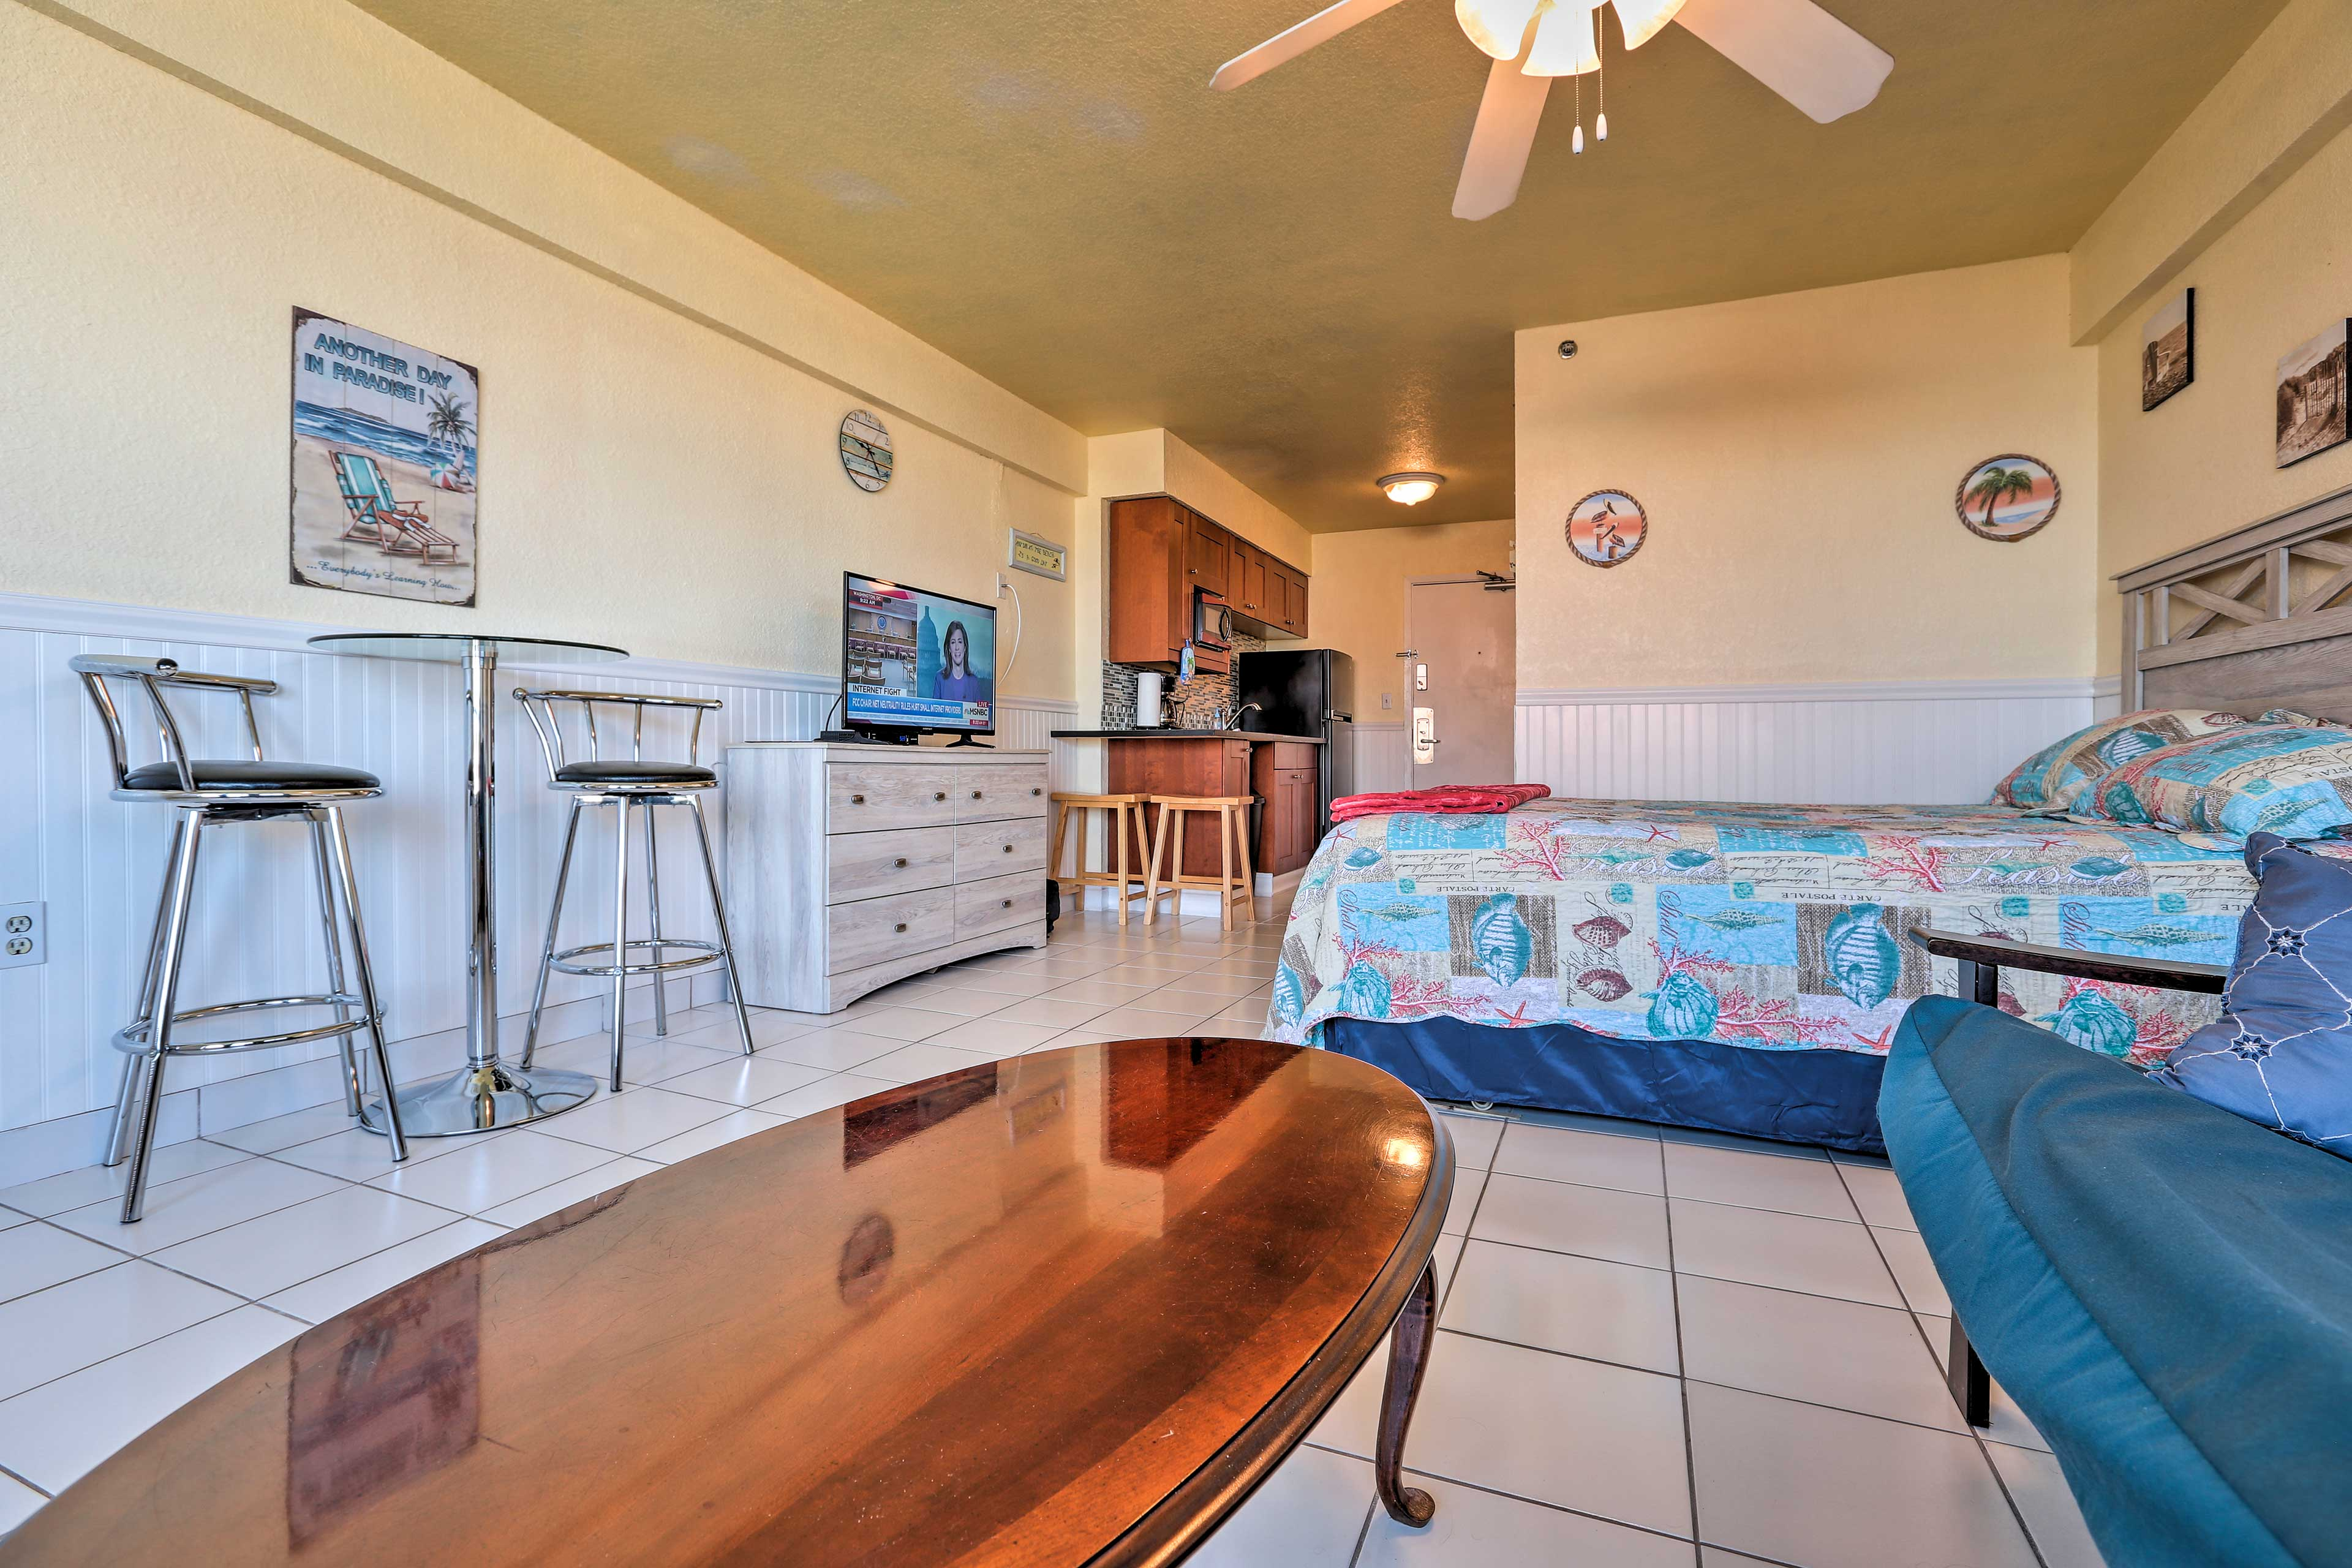 Up to 4 guests can call this lovely studio home during their sunny getaway!